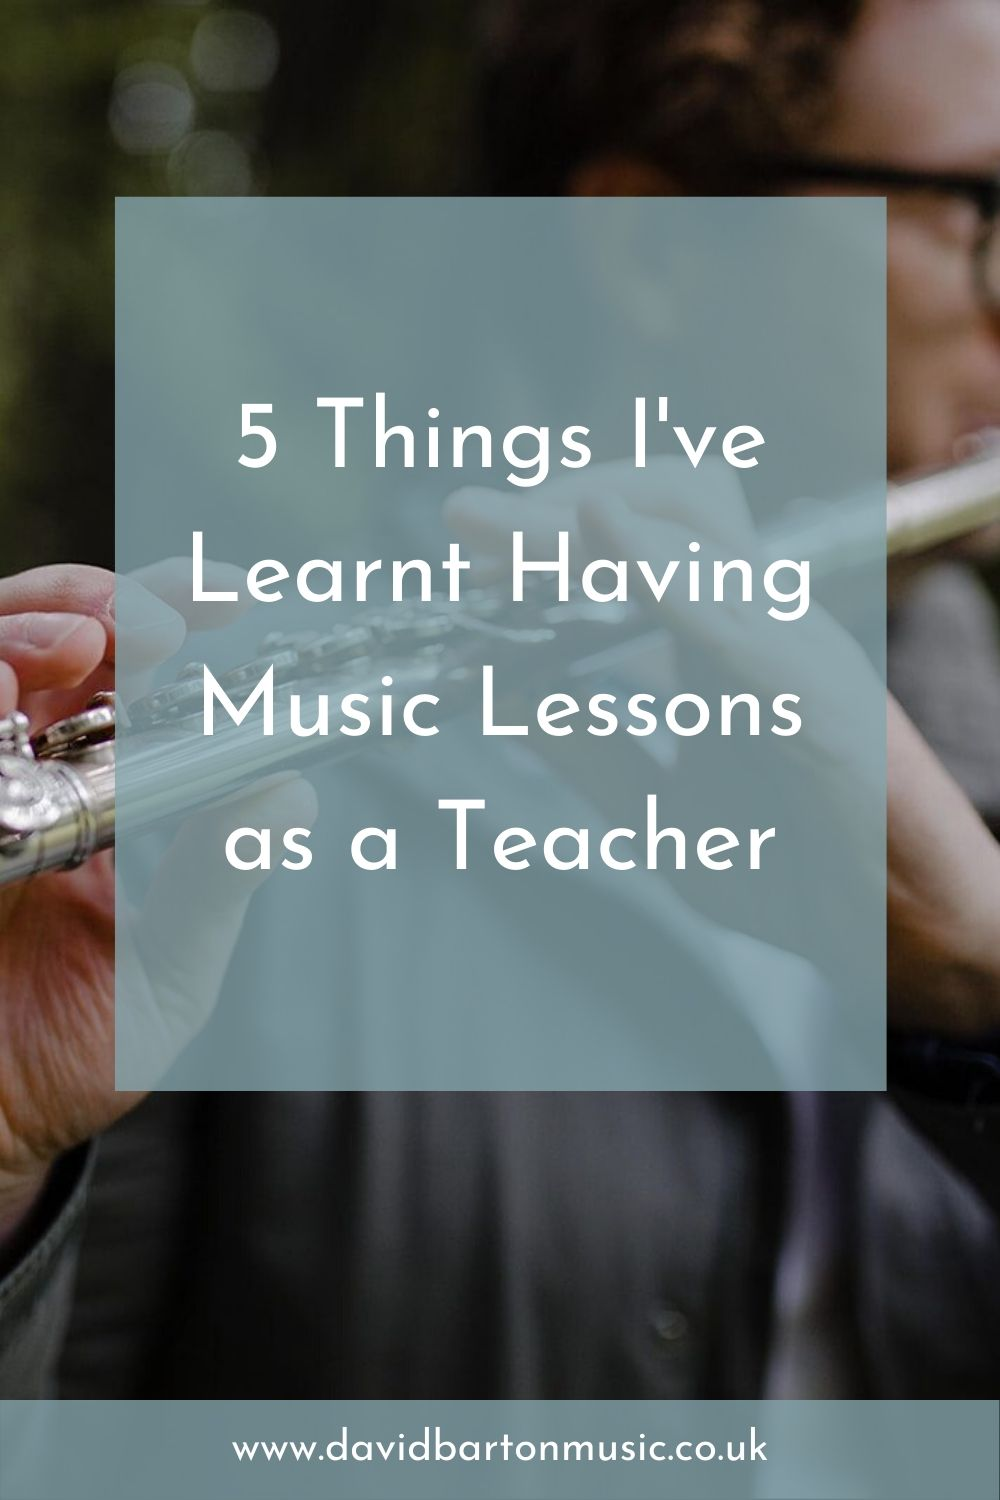 5 Things I've Learnt Having Music Lessons as a Teacher - Pinterest graphic